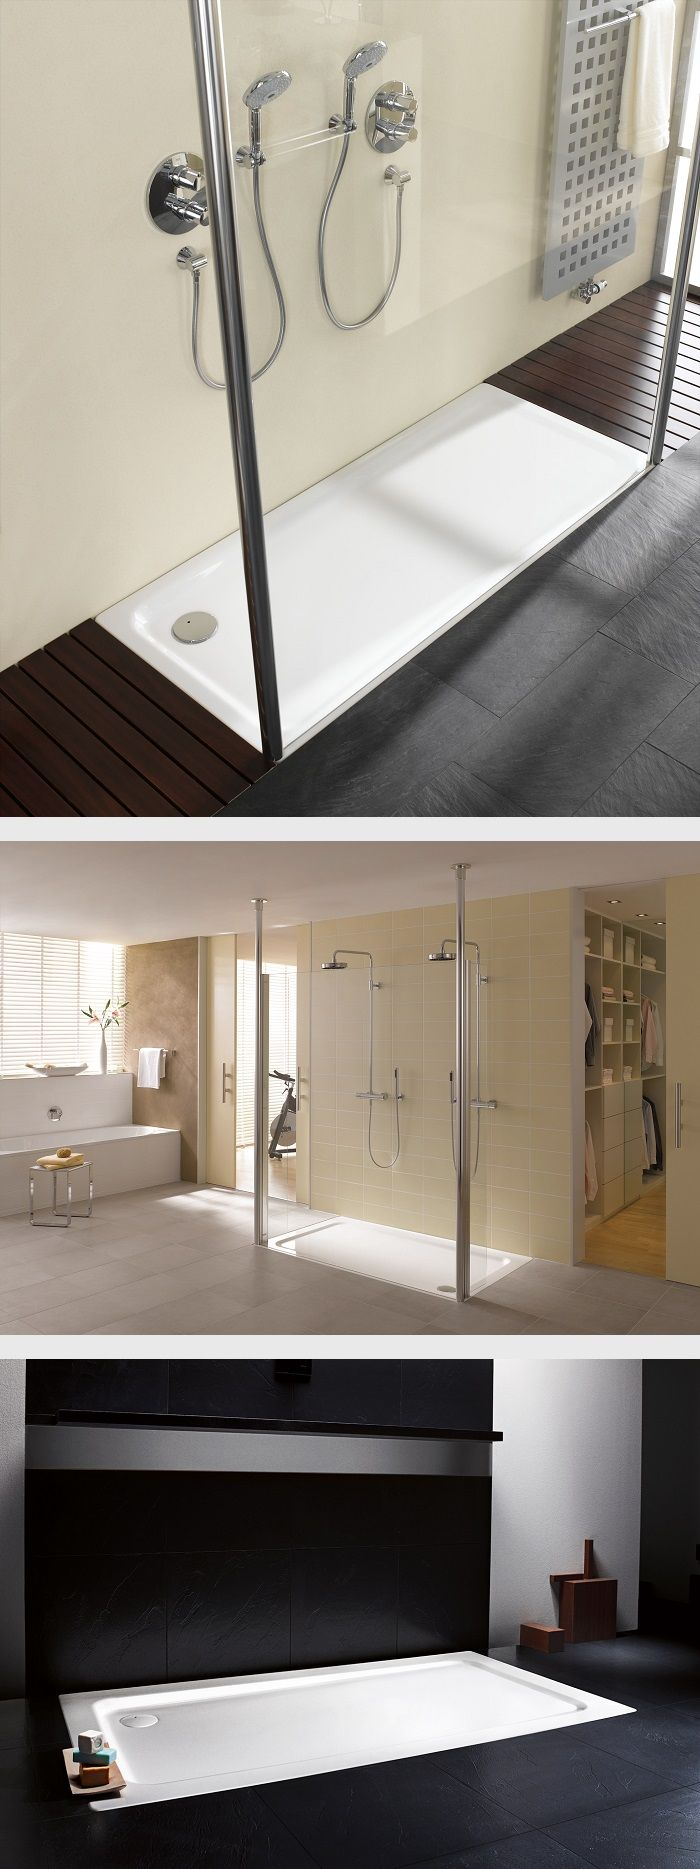 ber ideen zu dusche bodengleich auf pinterest. Black Bedroom Furniture Sets. Home Design Ideas